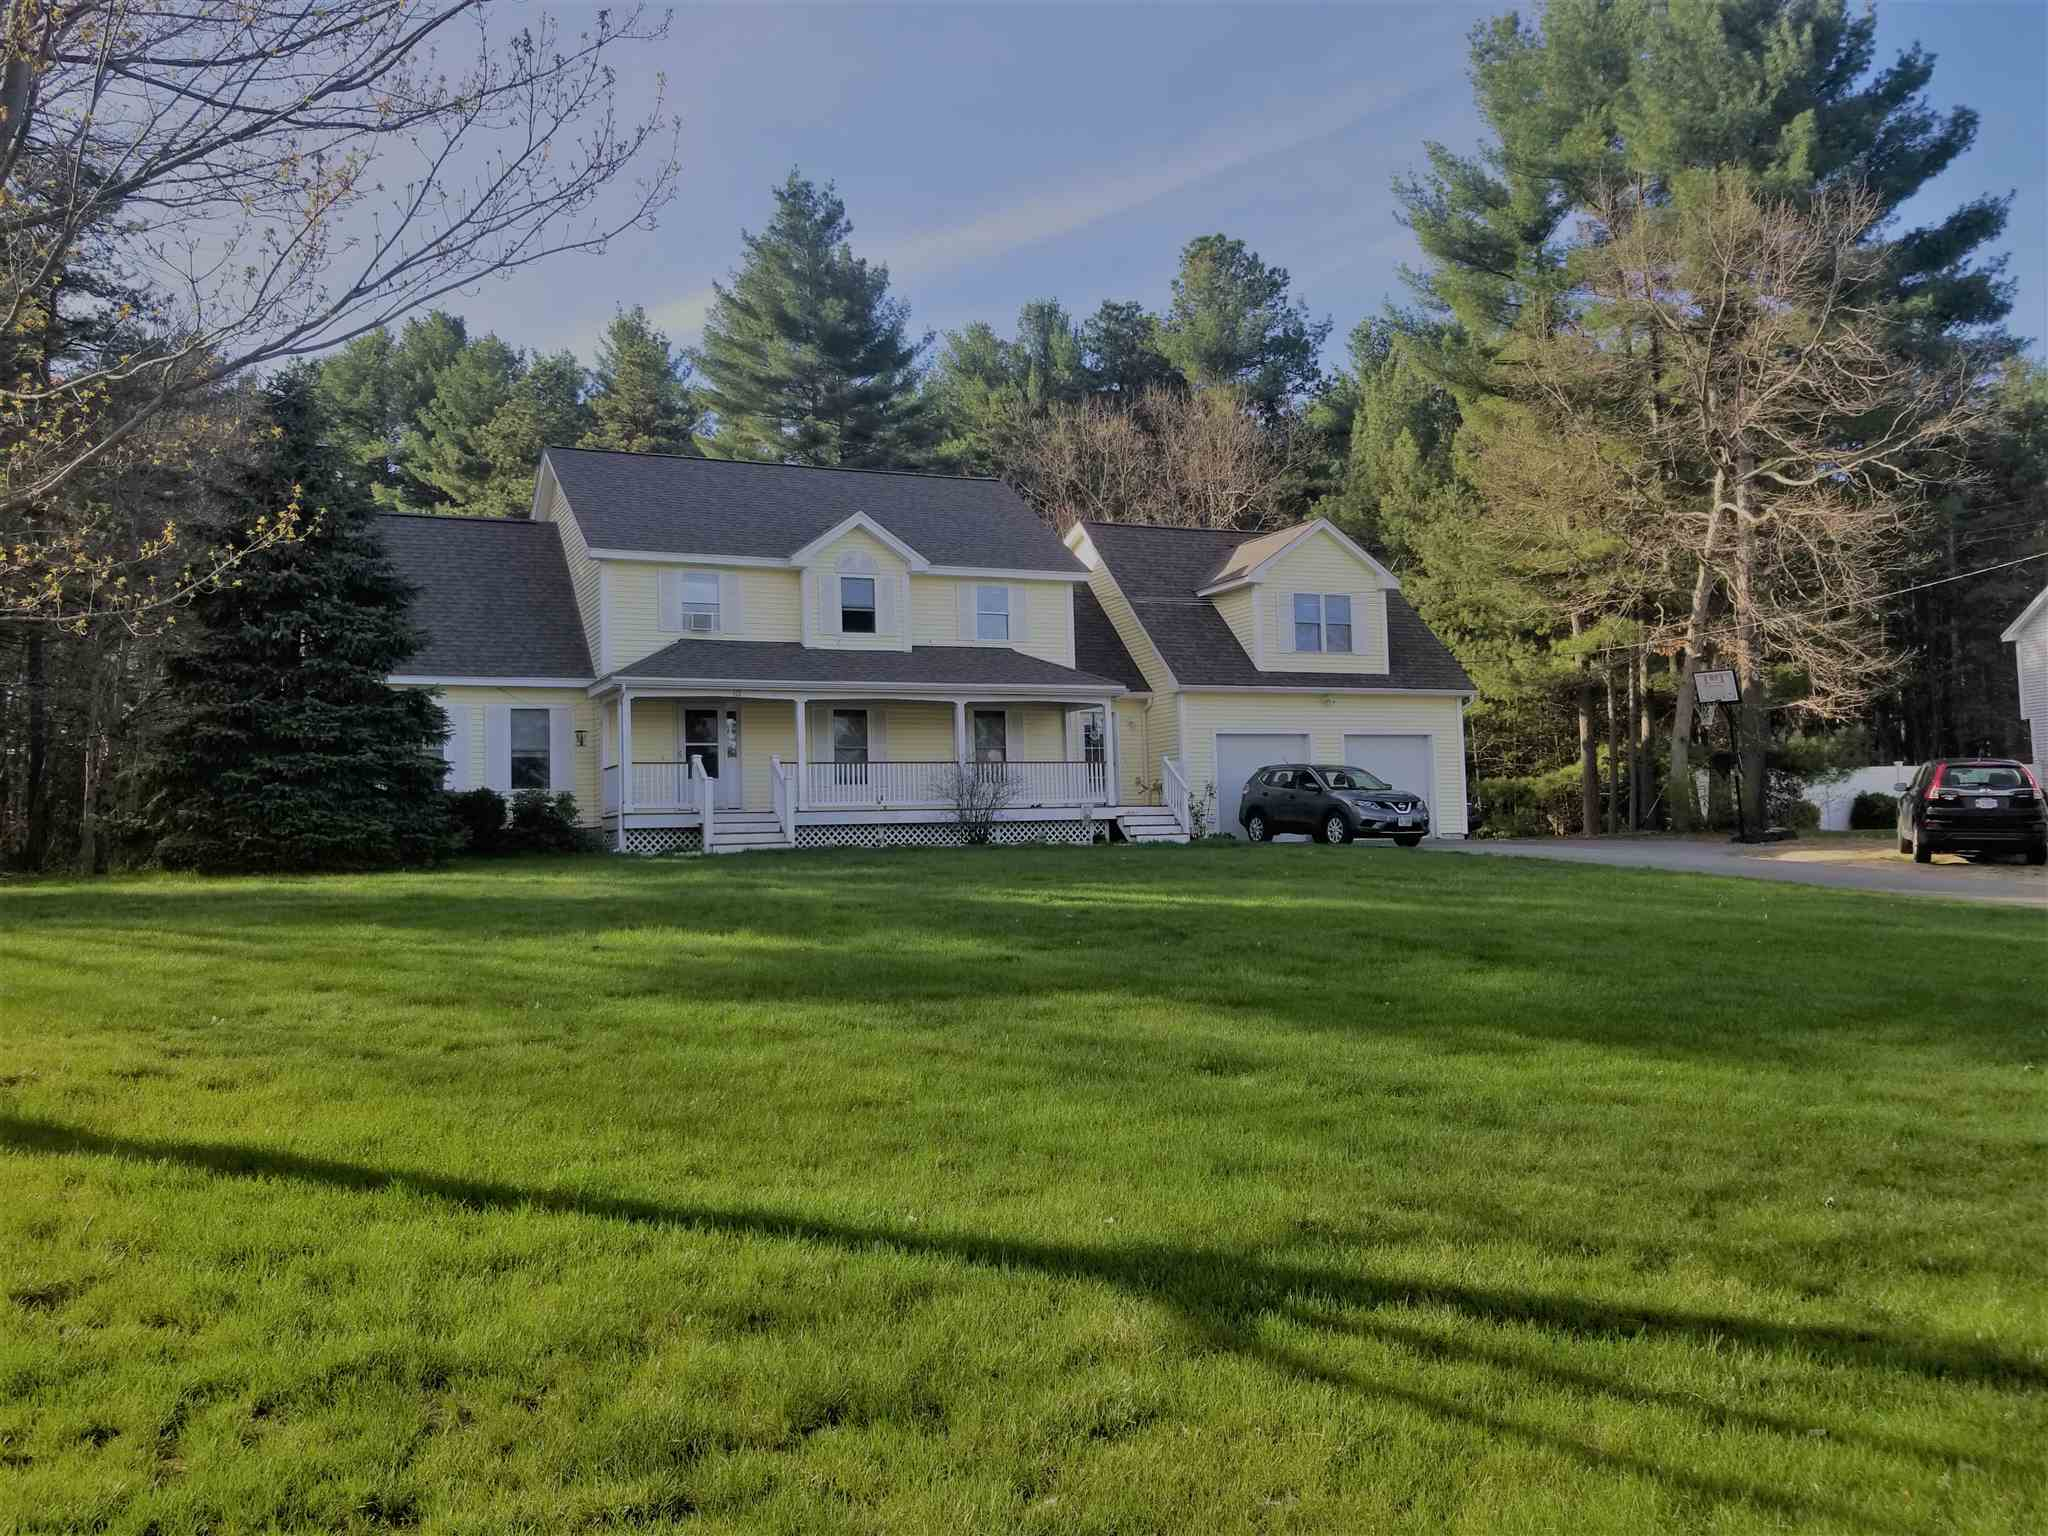 MLS 4788950: 112 Talent Road, Litchfield NH